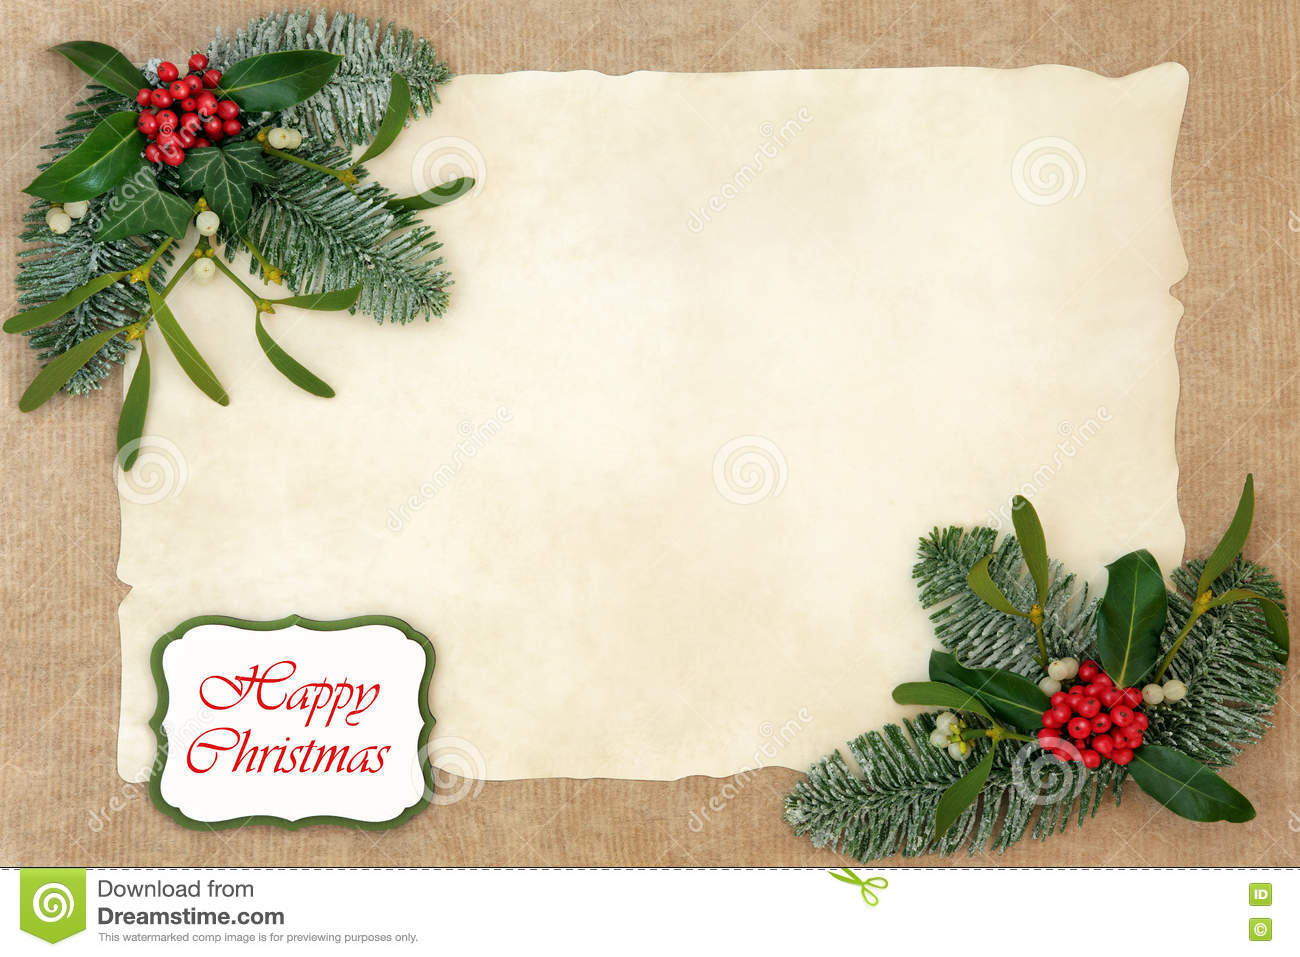 Christmas floral border stock photos freeimages com - Royalty Free Stock Photo Download Happy Christmas Floral Border